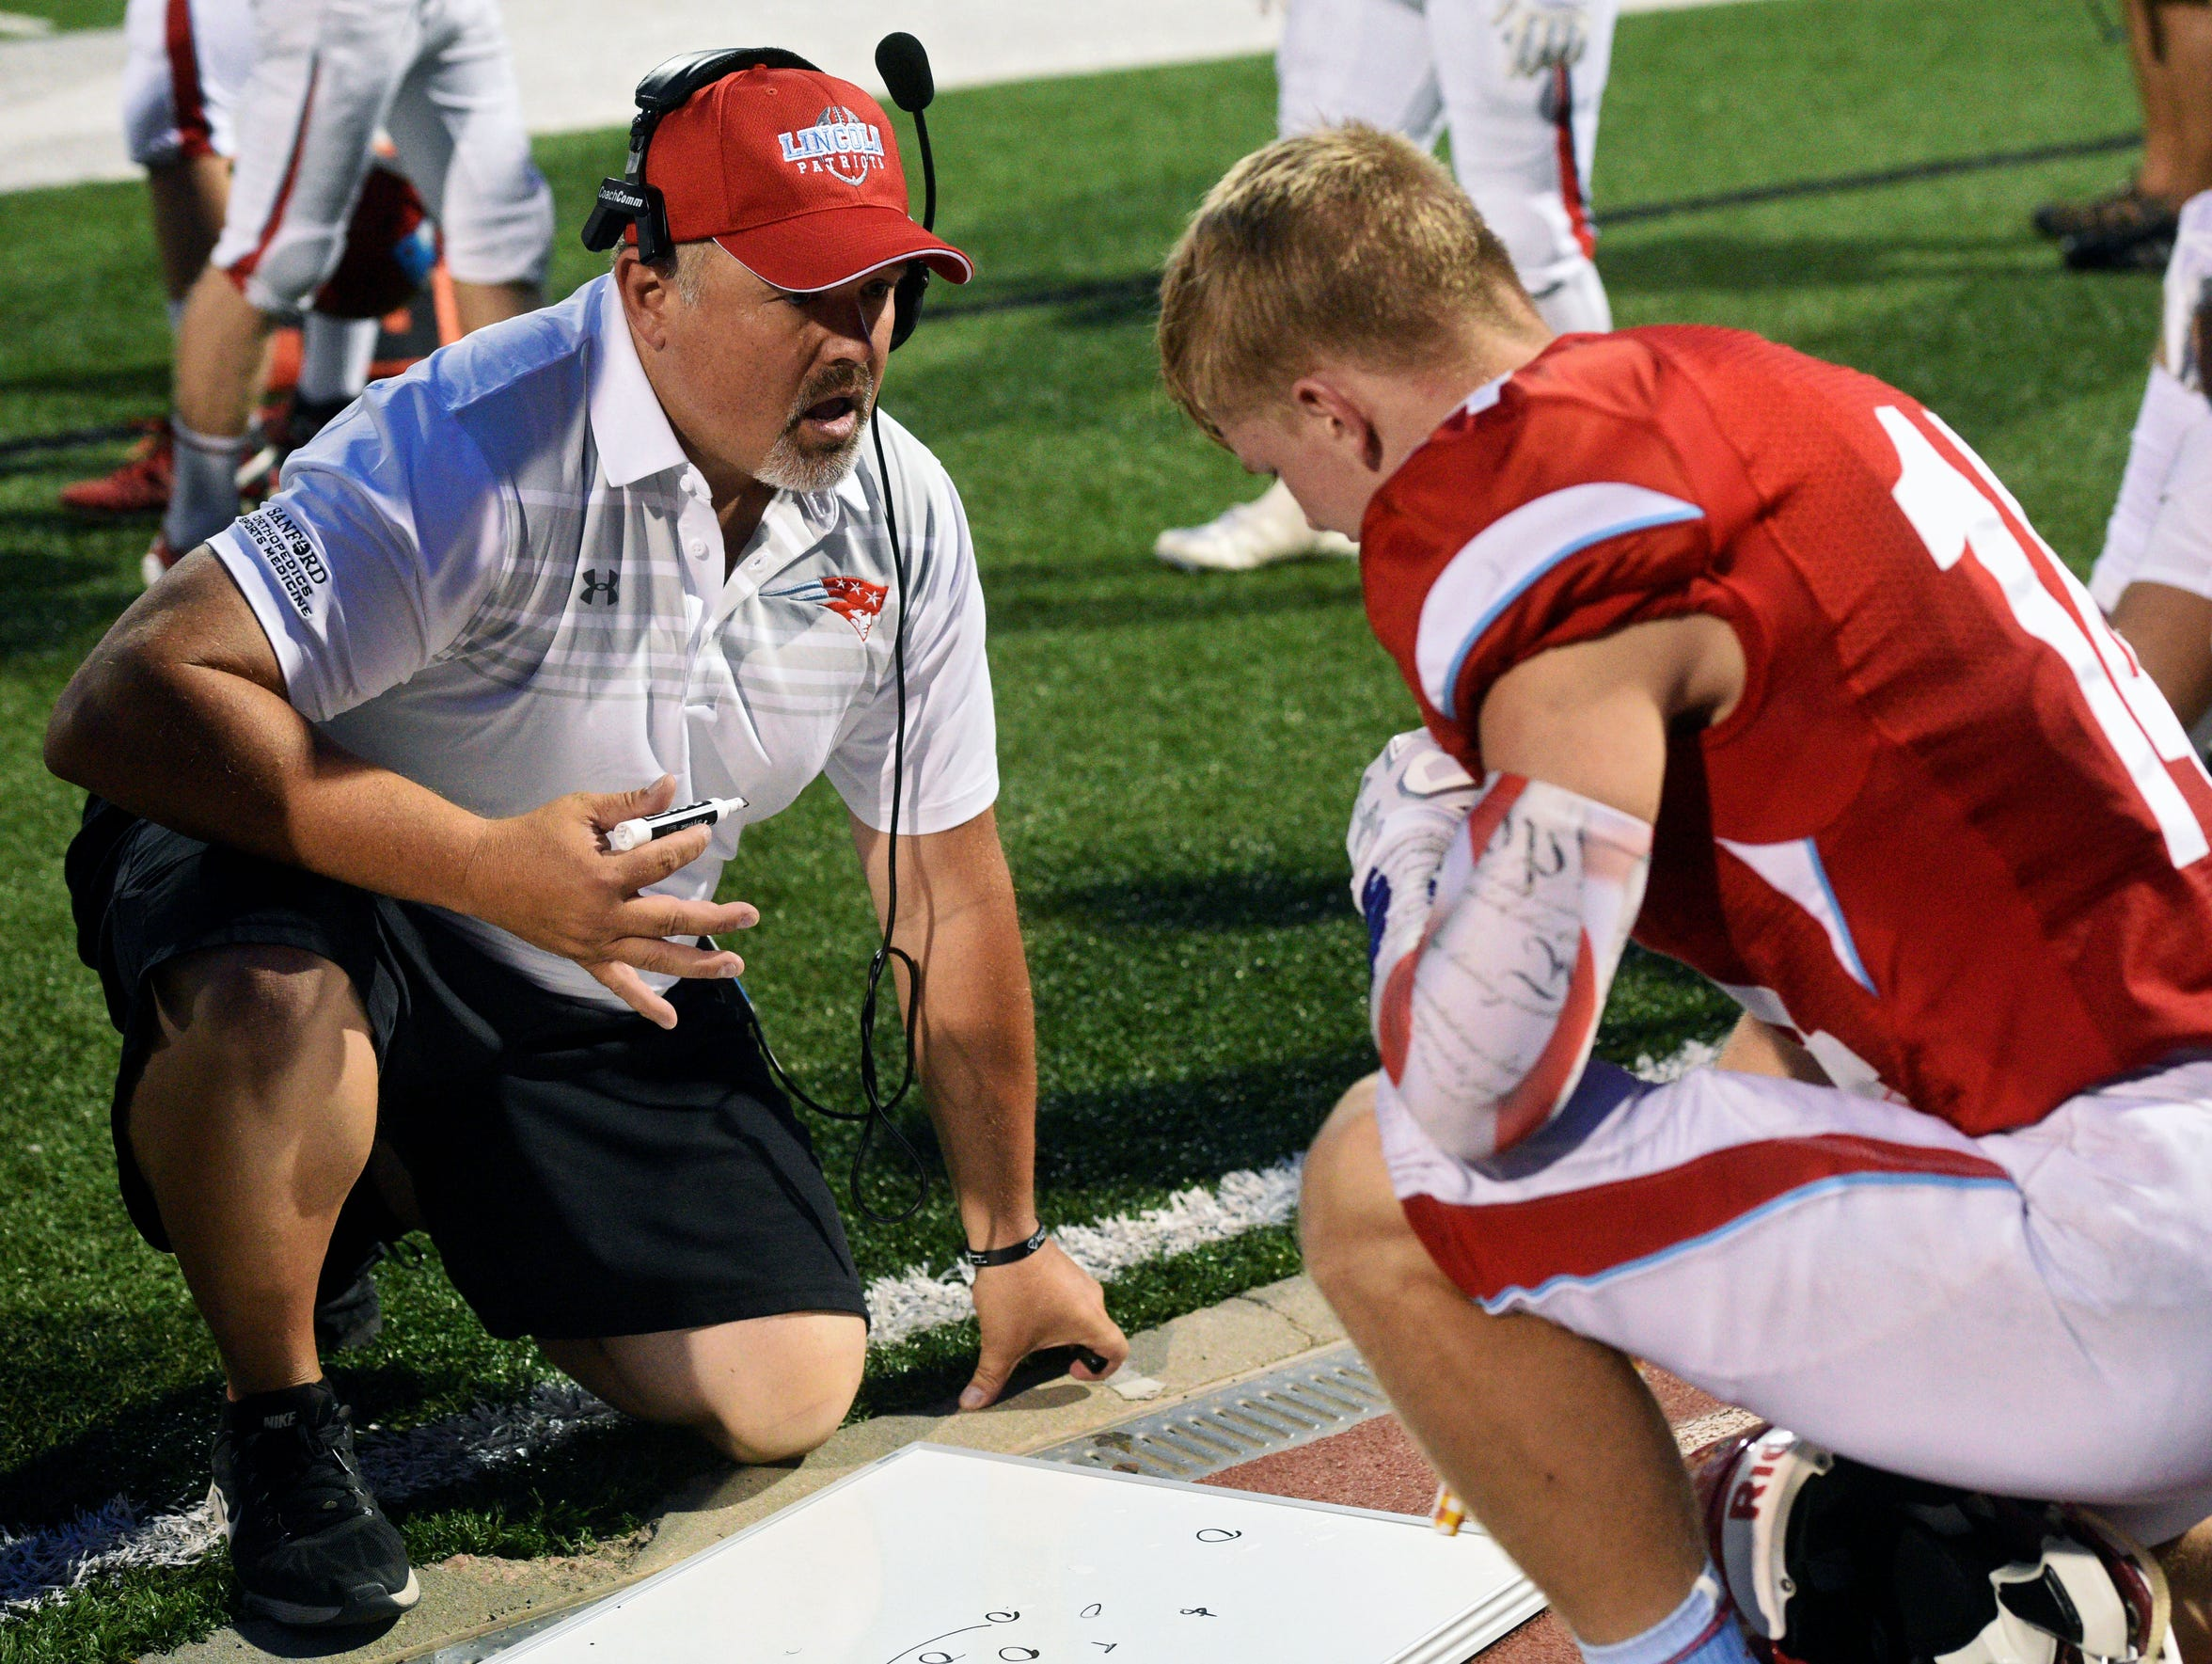 Lincoln football coach Jared Fredenburg stresses that new rules and regulations have been added in an effort to make the game safer.